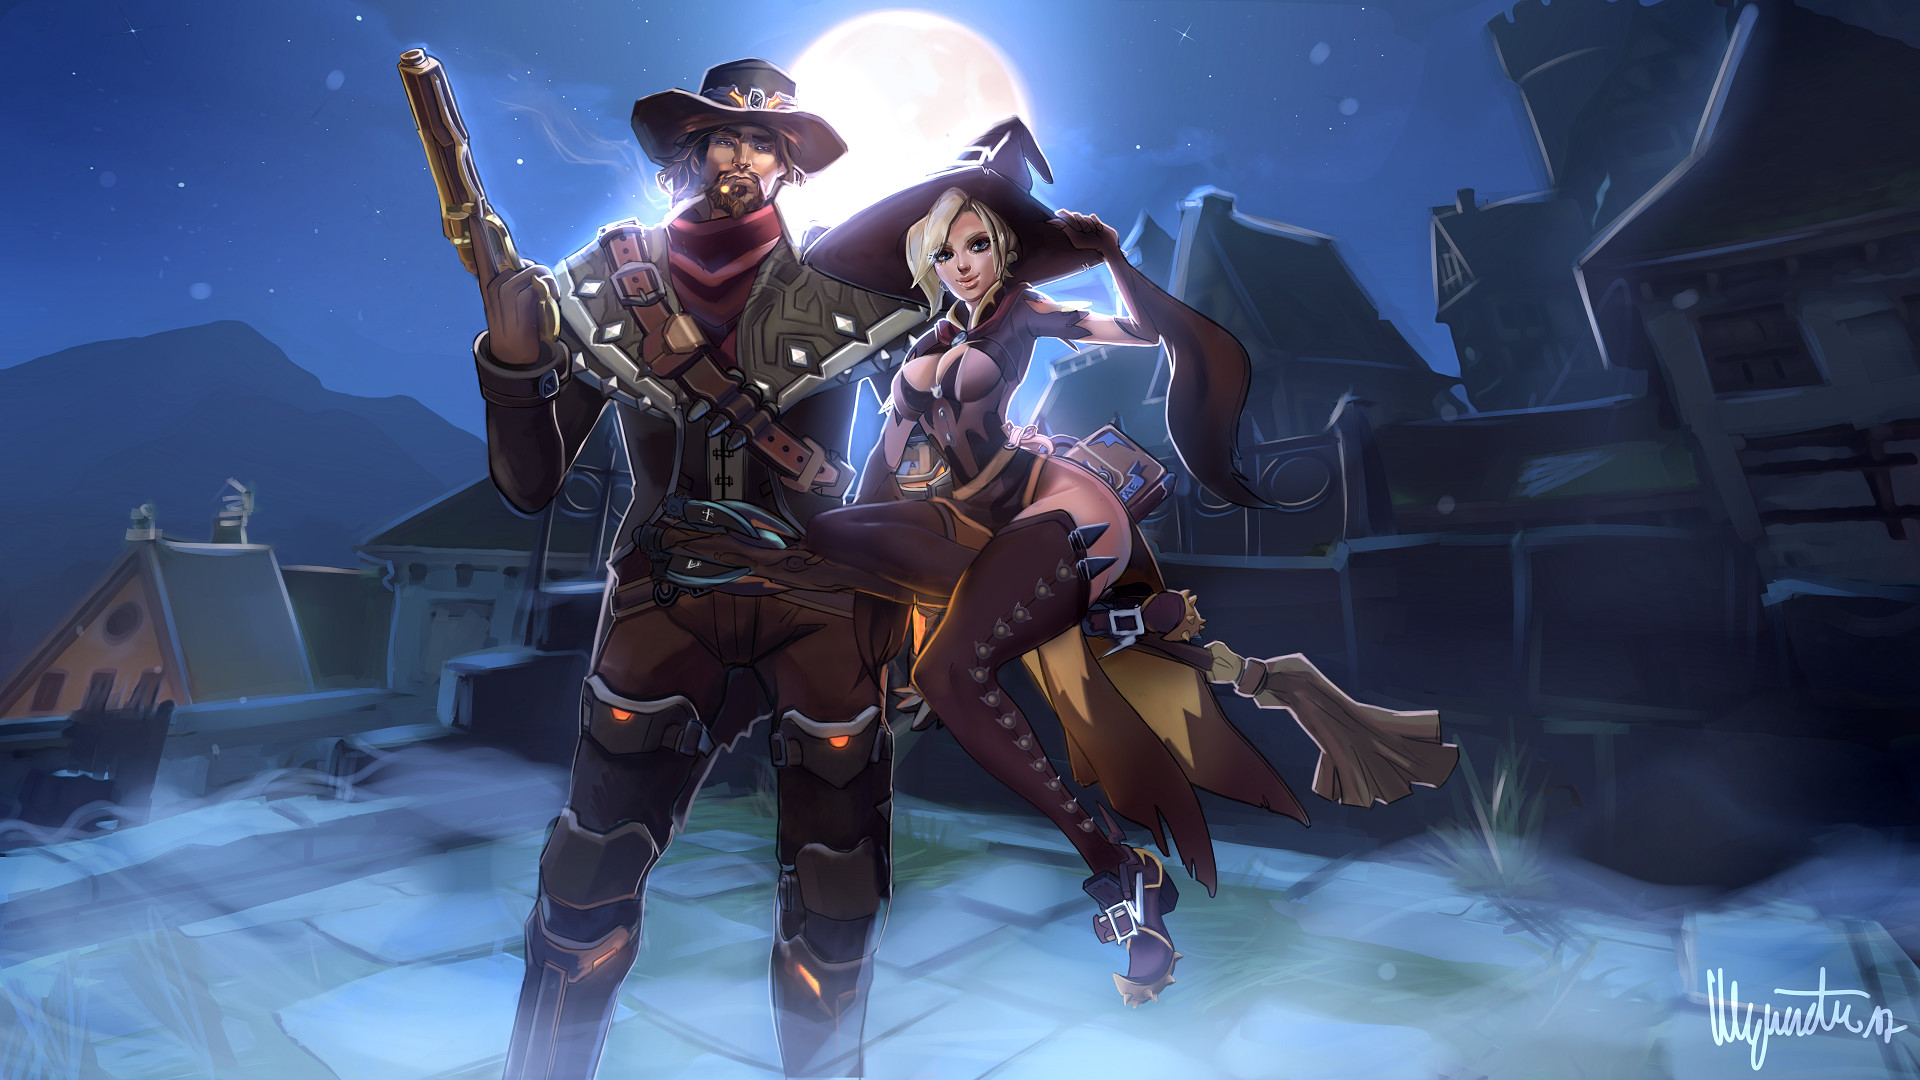 nathalie gottscheu - mc cree and mercy halloween skins - overwatch